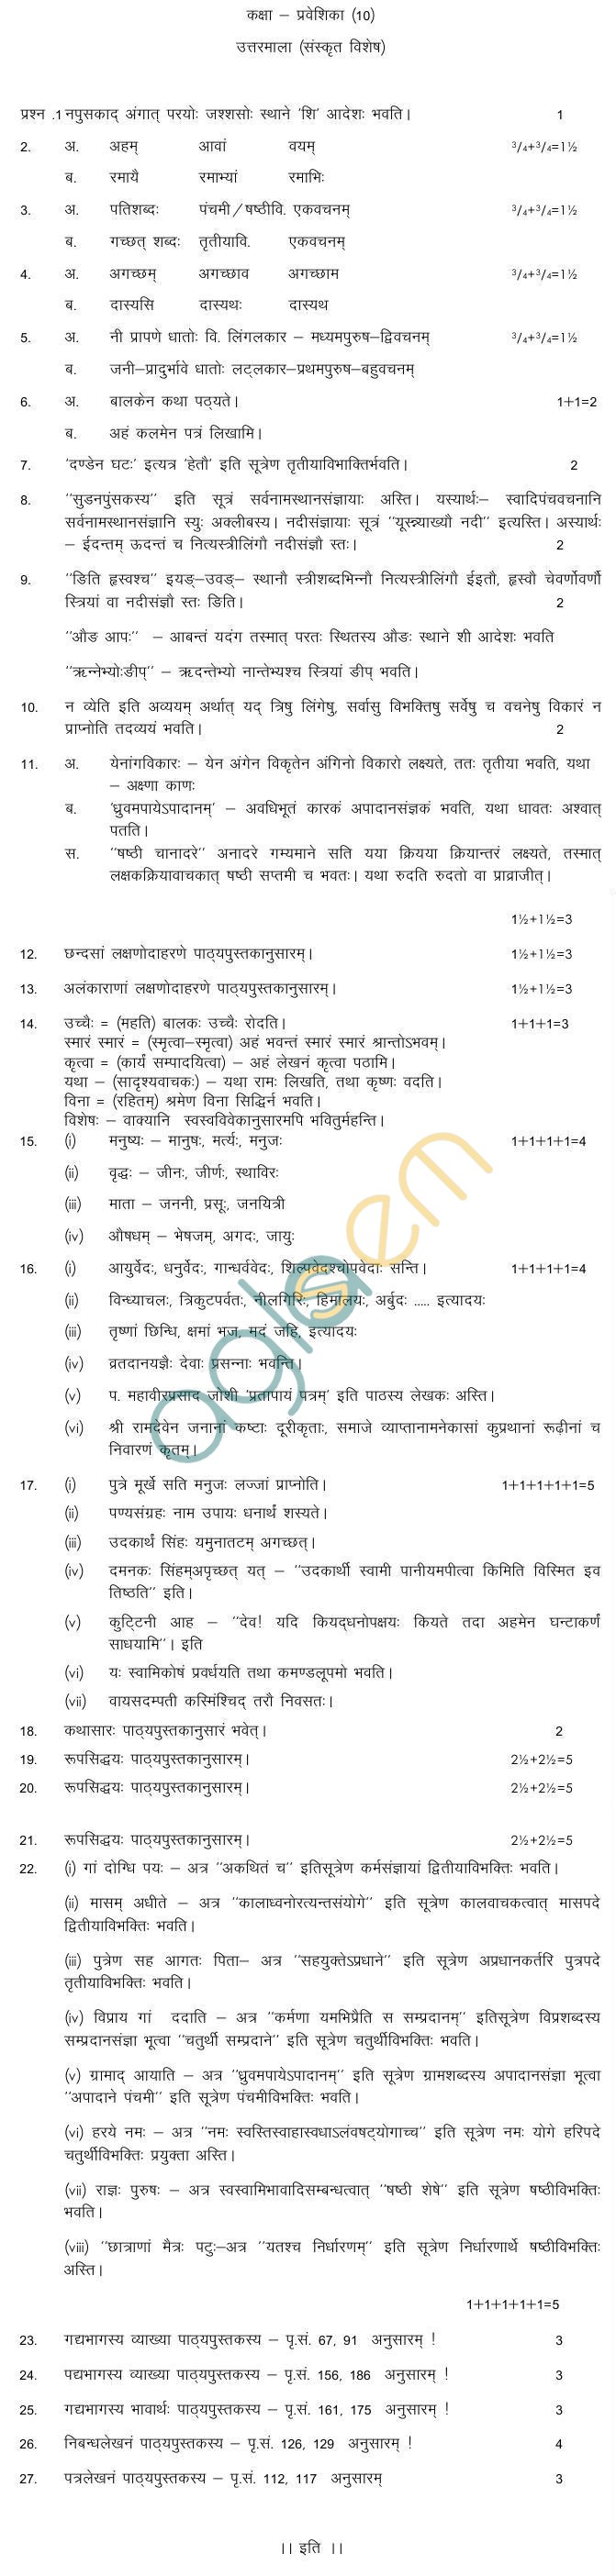 Rajasthan Board Class 10 Sanskrit Praveshika Model Question Paper